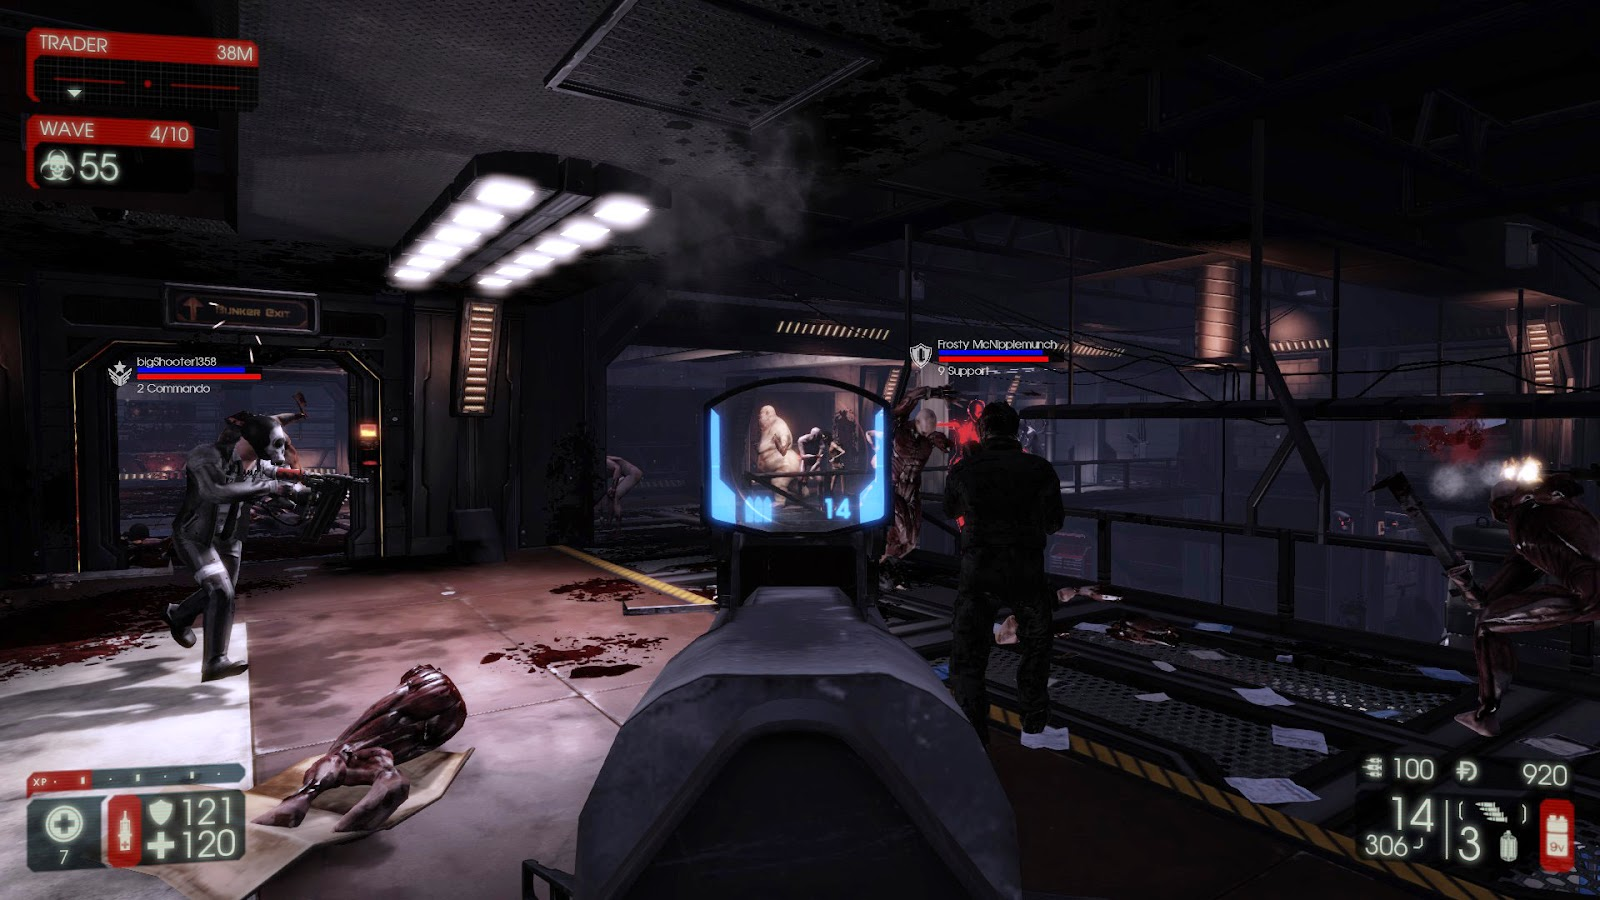 The Nocturnal Rambler Impressions Of Killing Floor 2